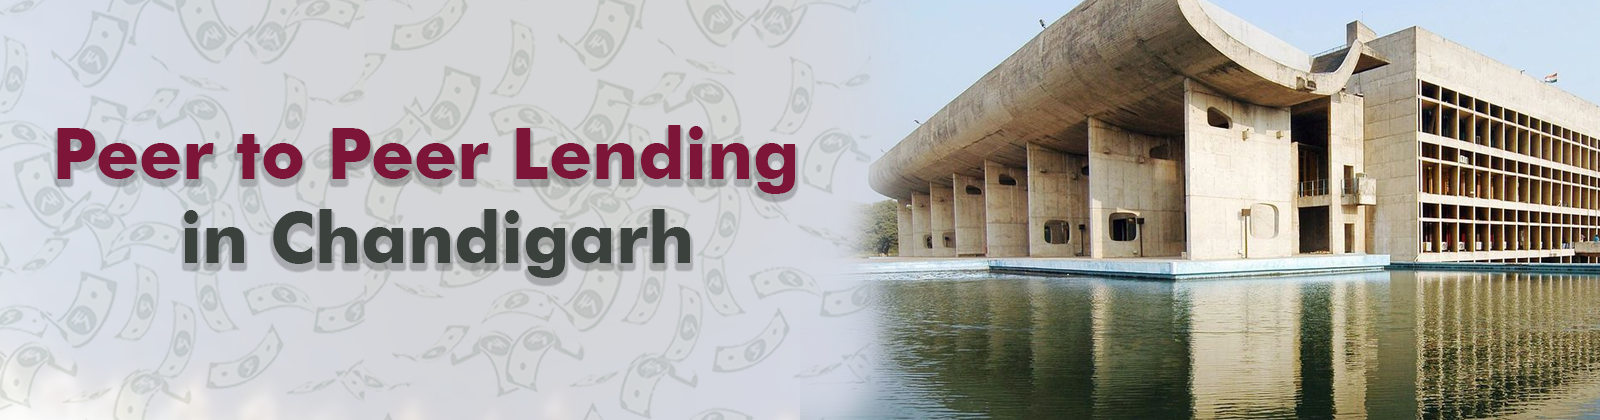 Peer to Peer Lending in Chandigarh